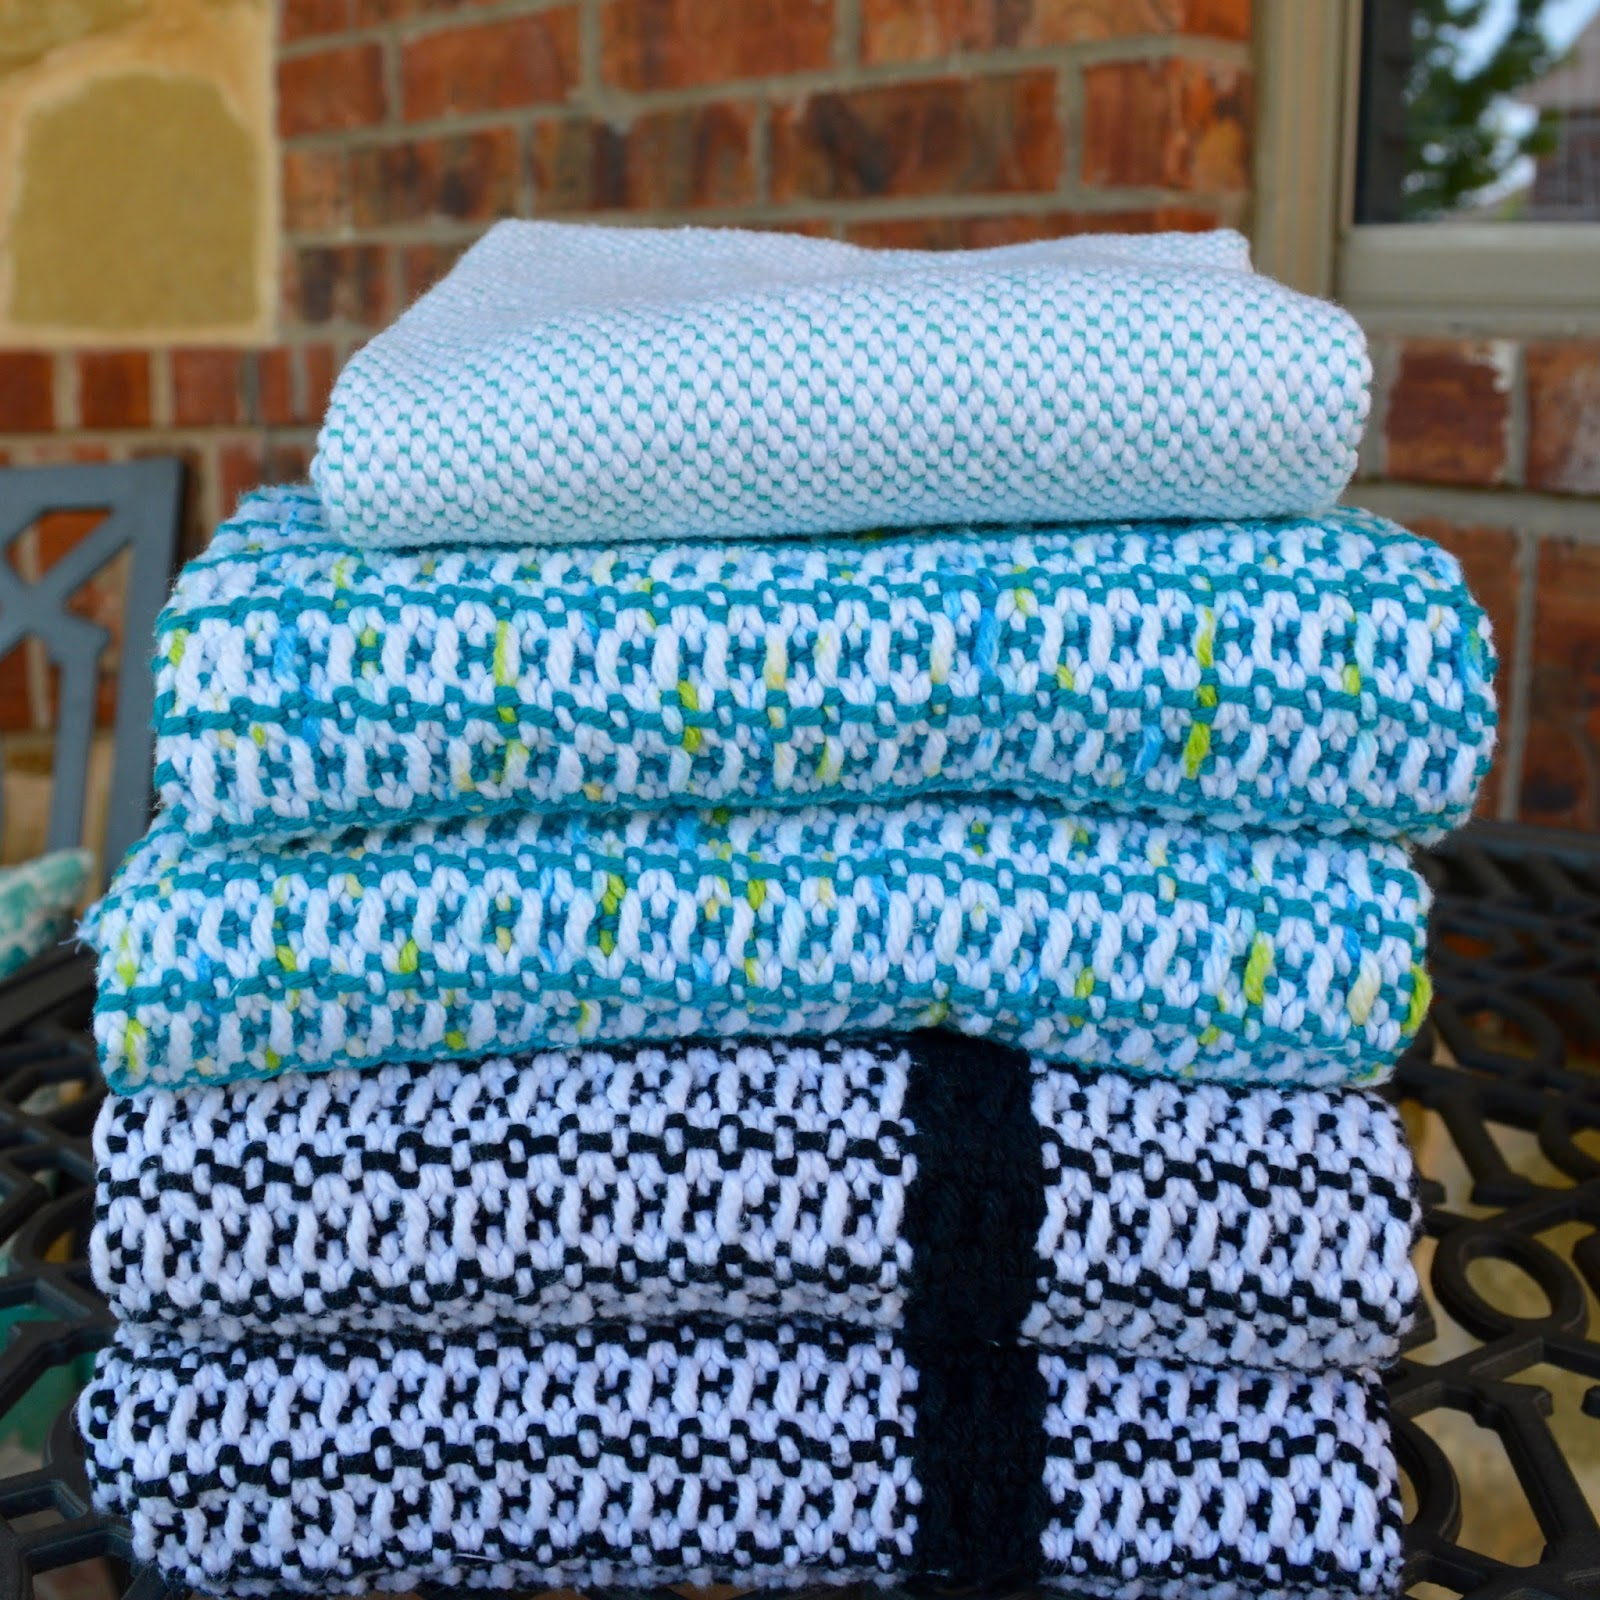 Luxury Crochet Patterns For Dish Towels Pictures - Sewing Pattern ...